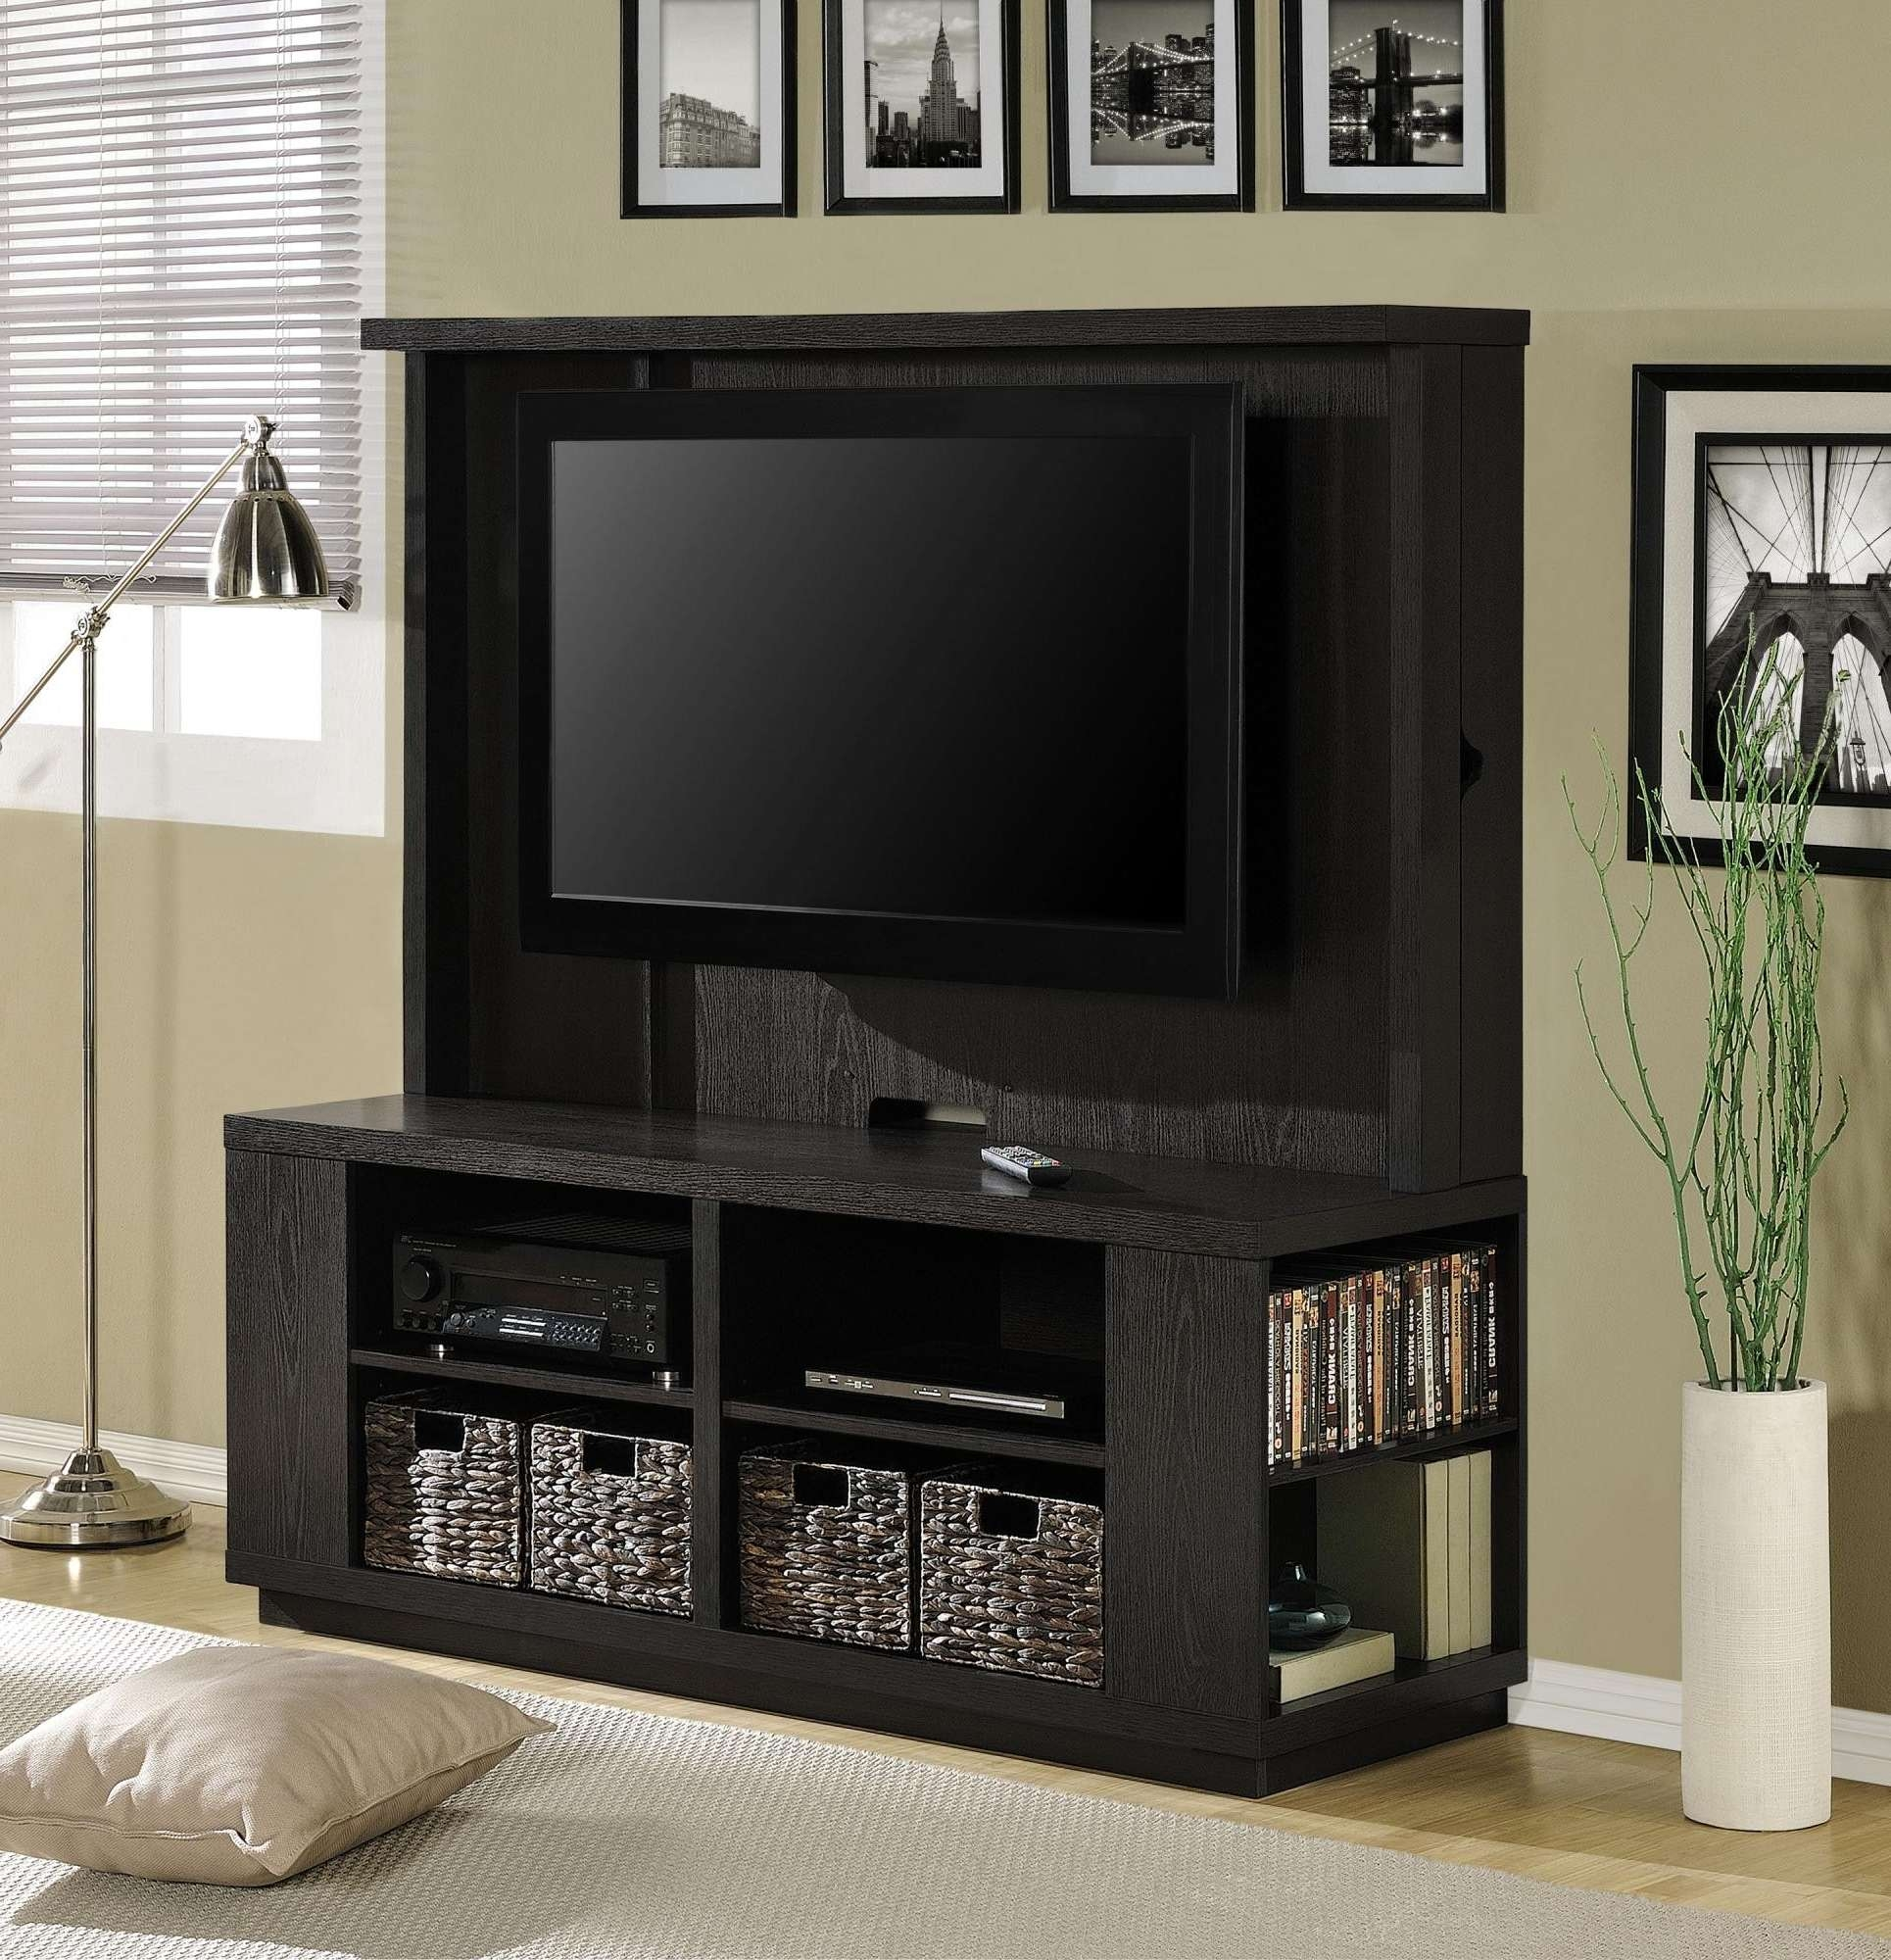 Shelves : Marvelous Small Black Wall Mounted Tv Stand With Storage Inside Tv Cabinets With Storage (View 10 of 20)